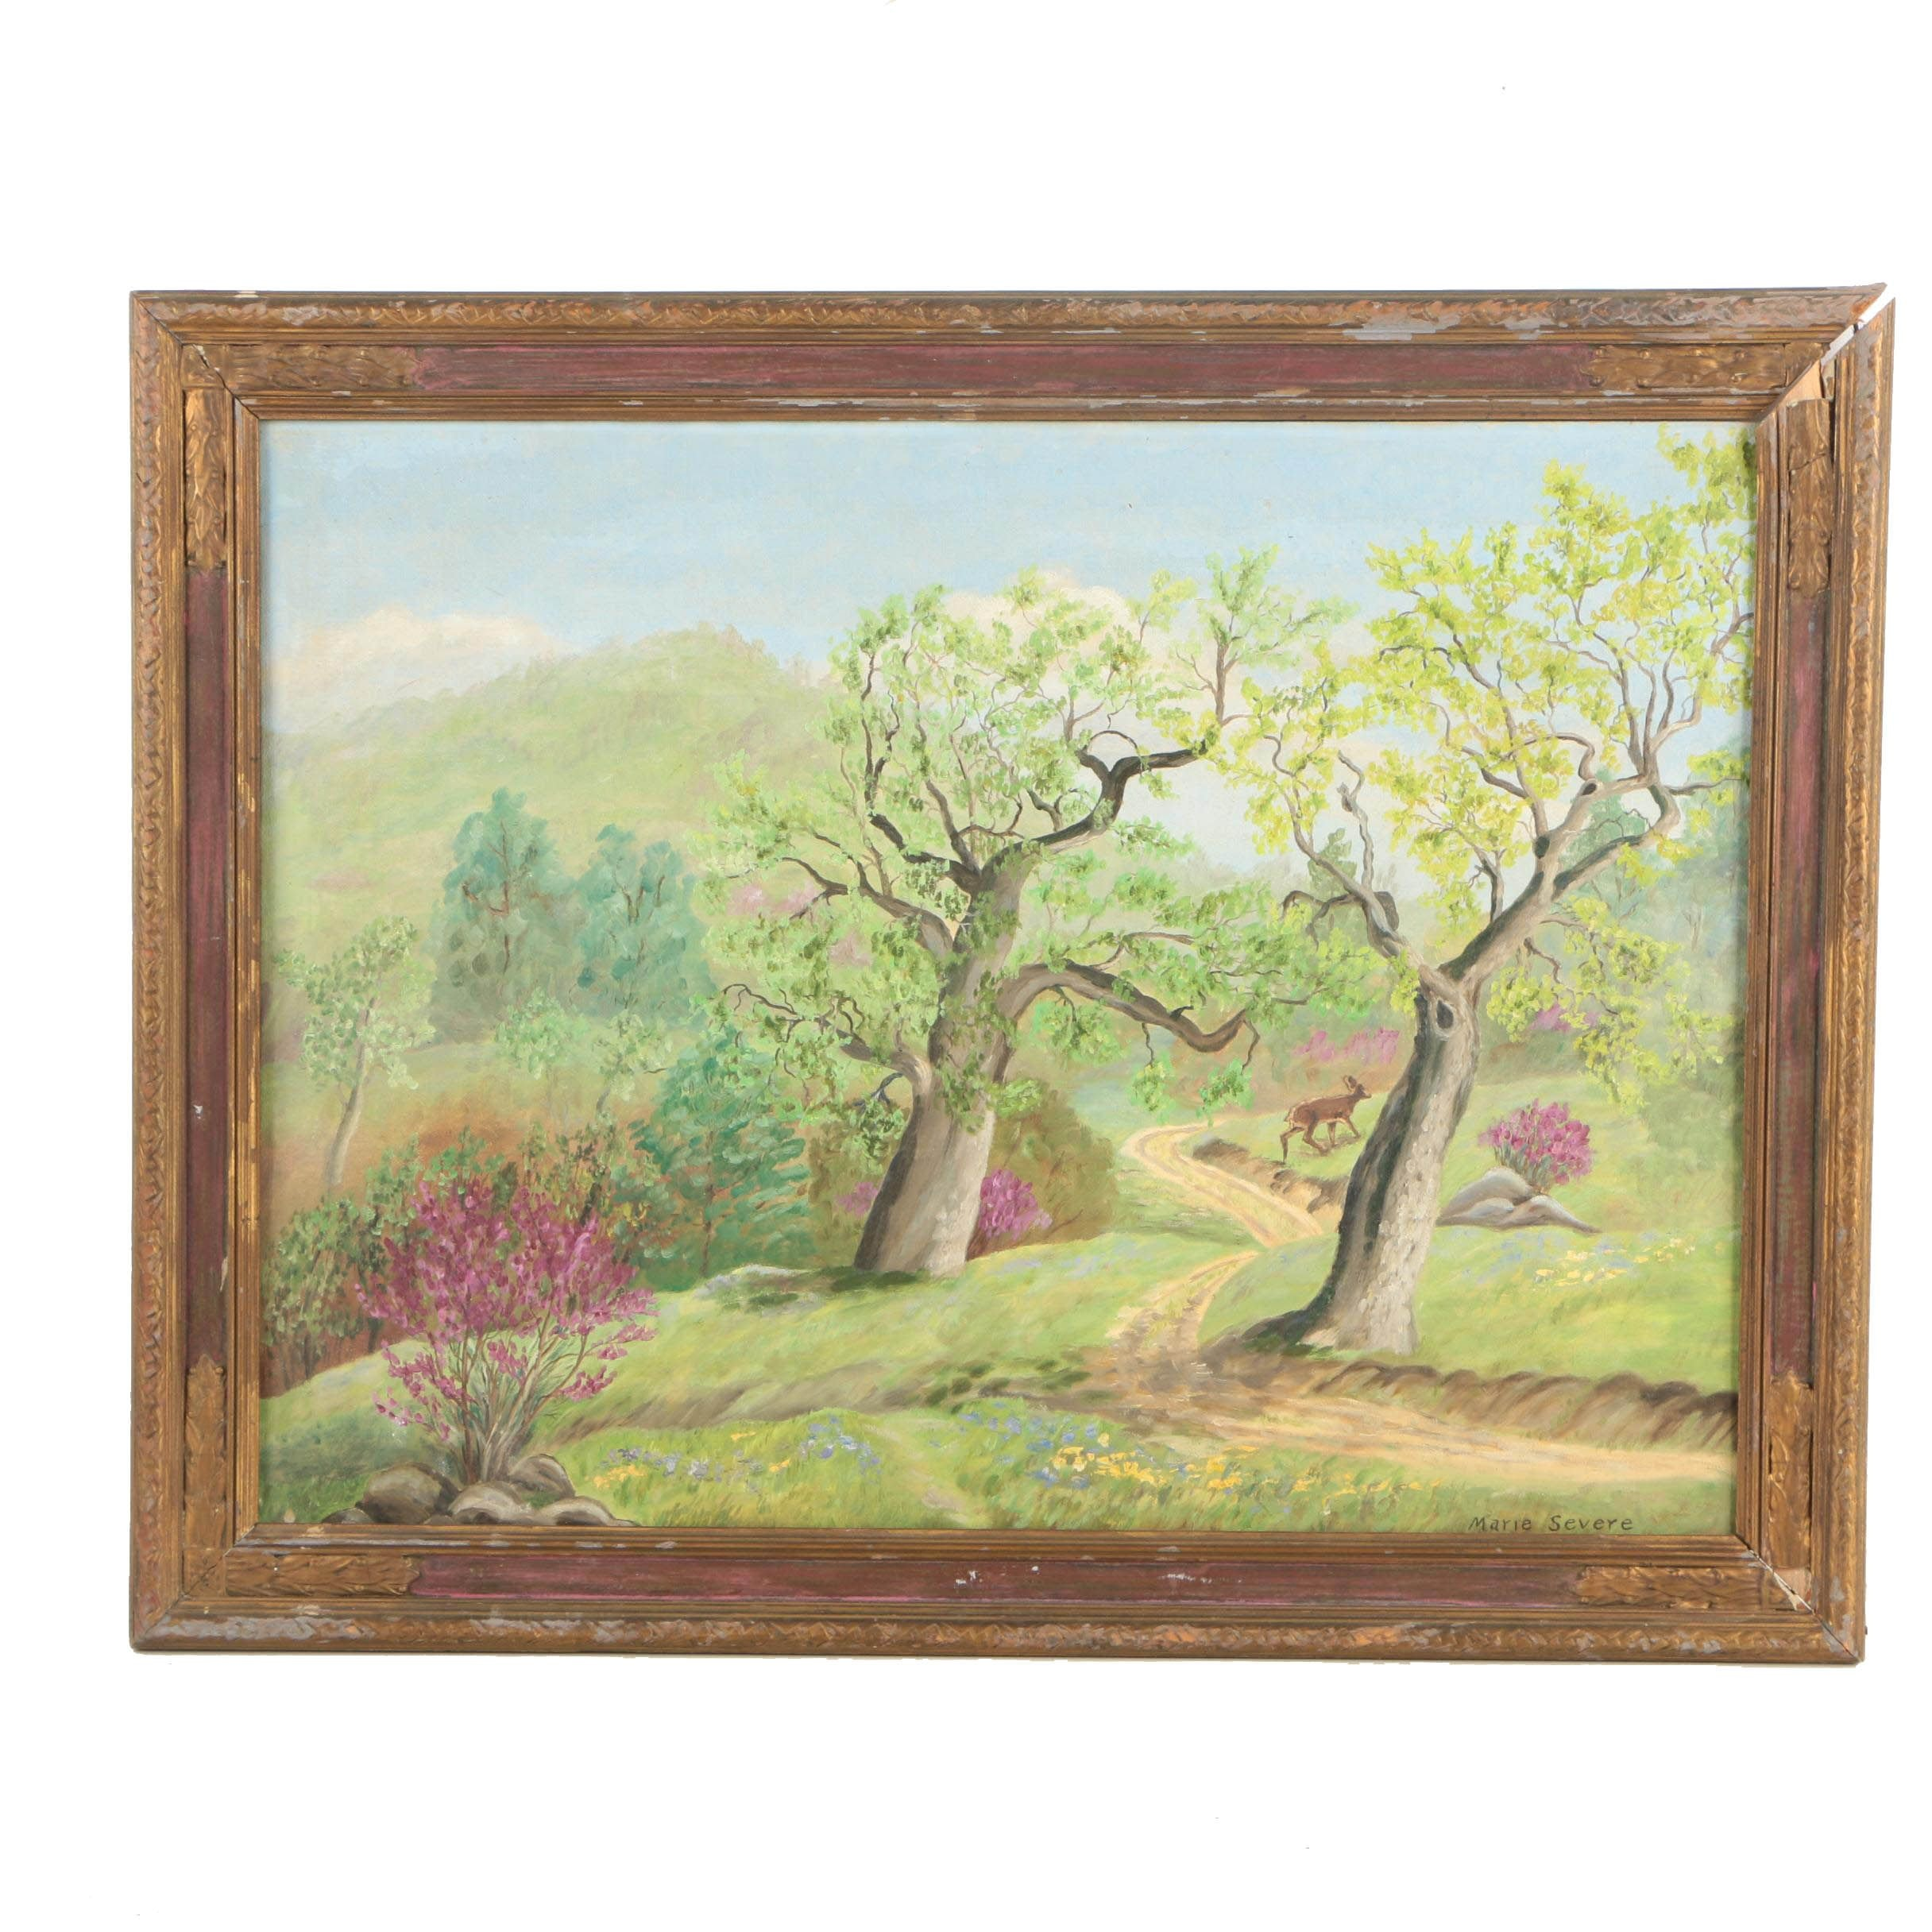 Marie Severe Oil Painting of a Serene Landscape